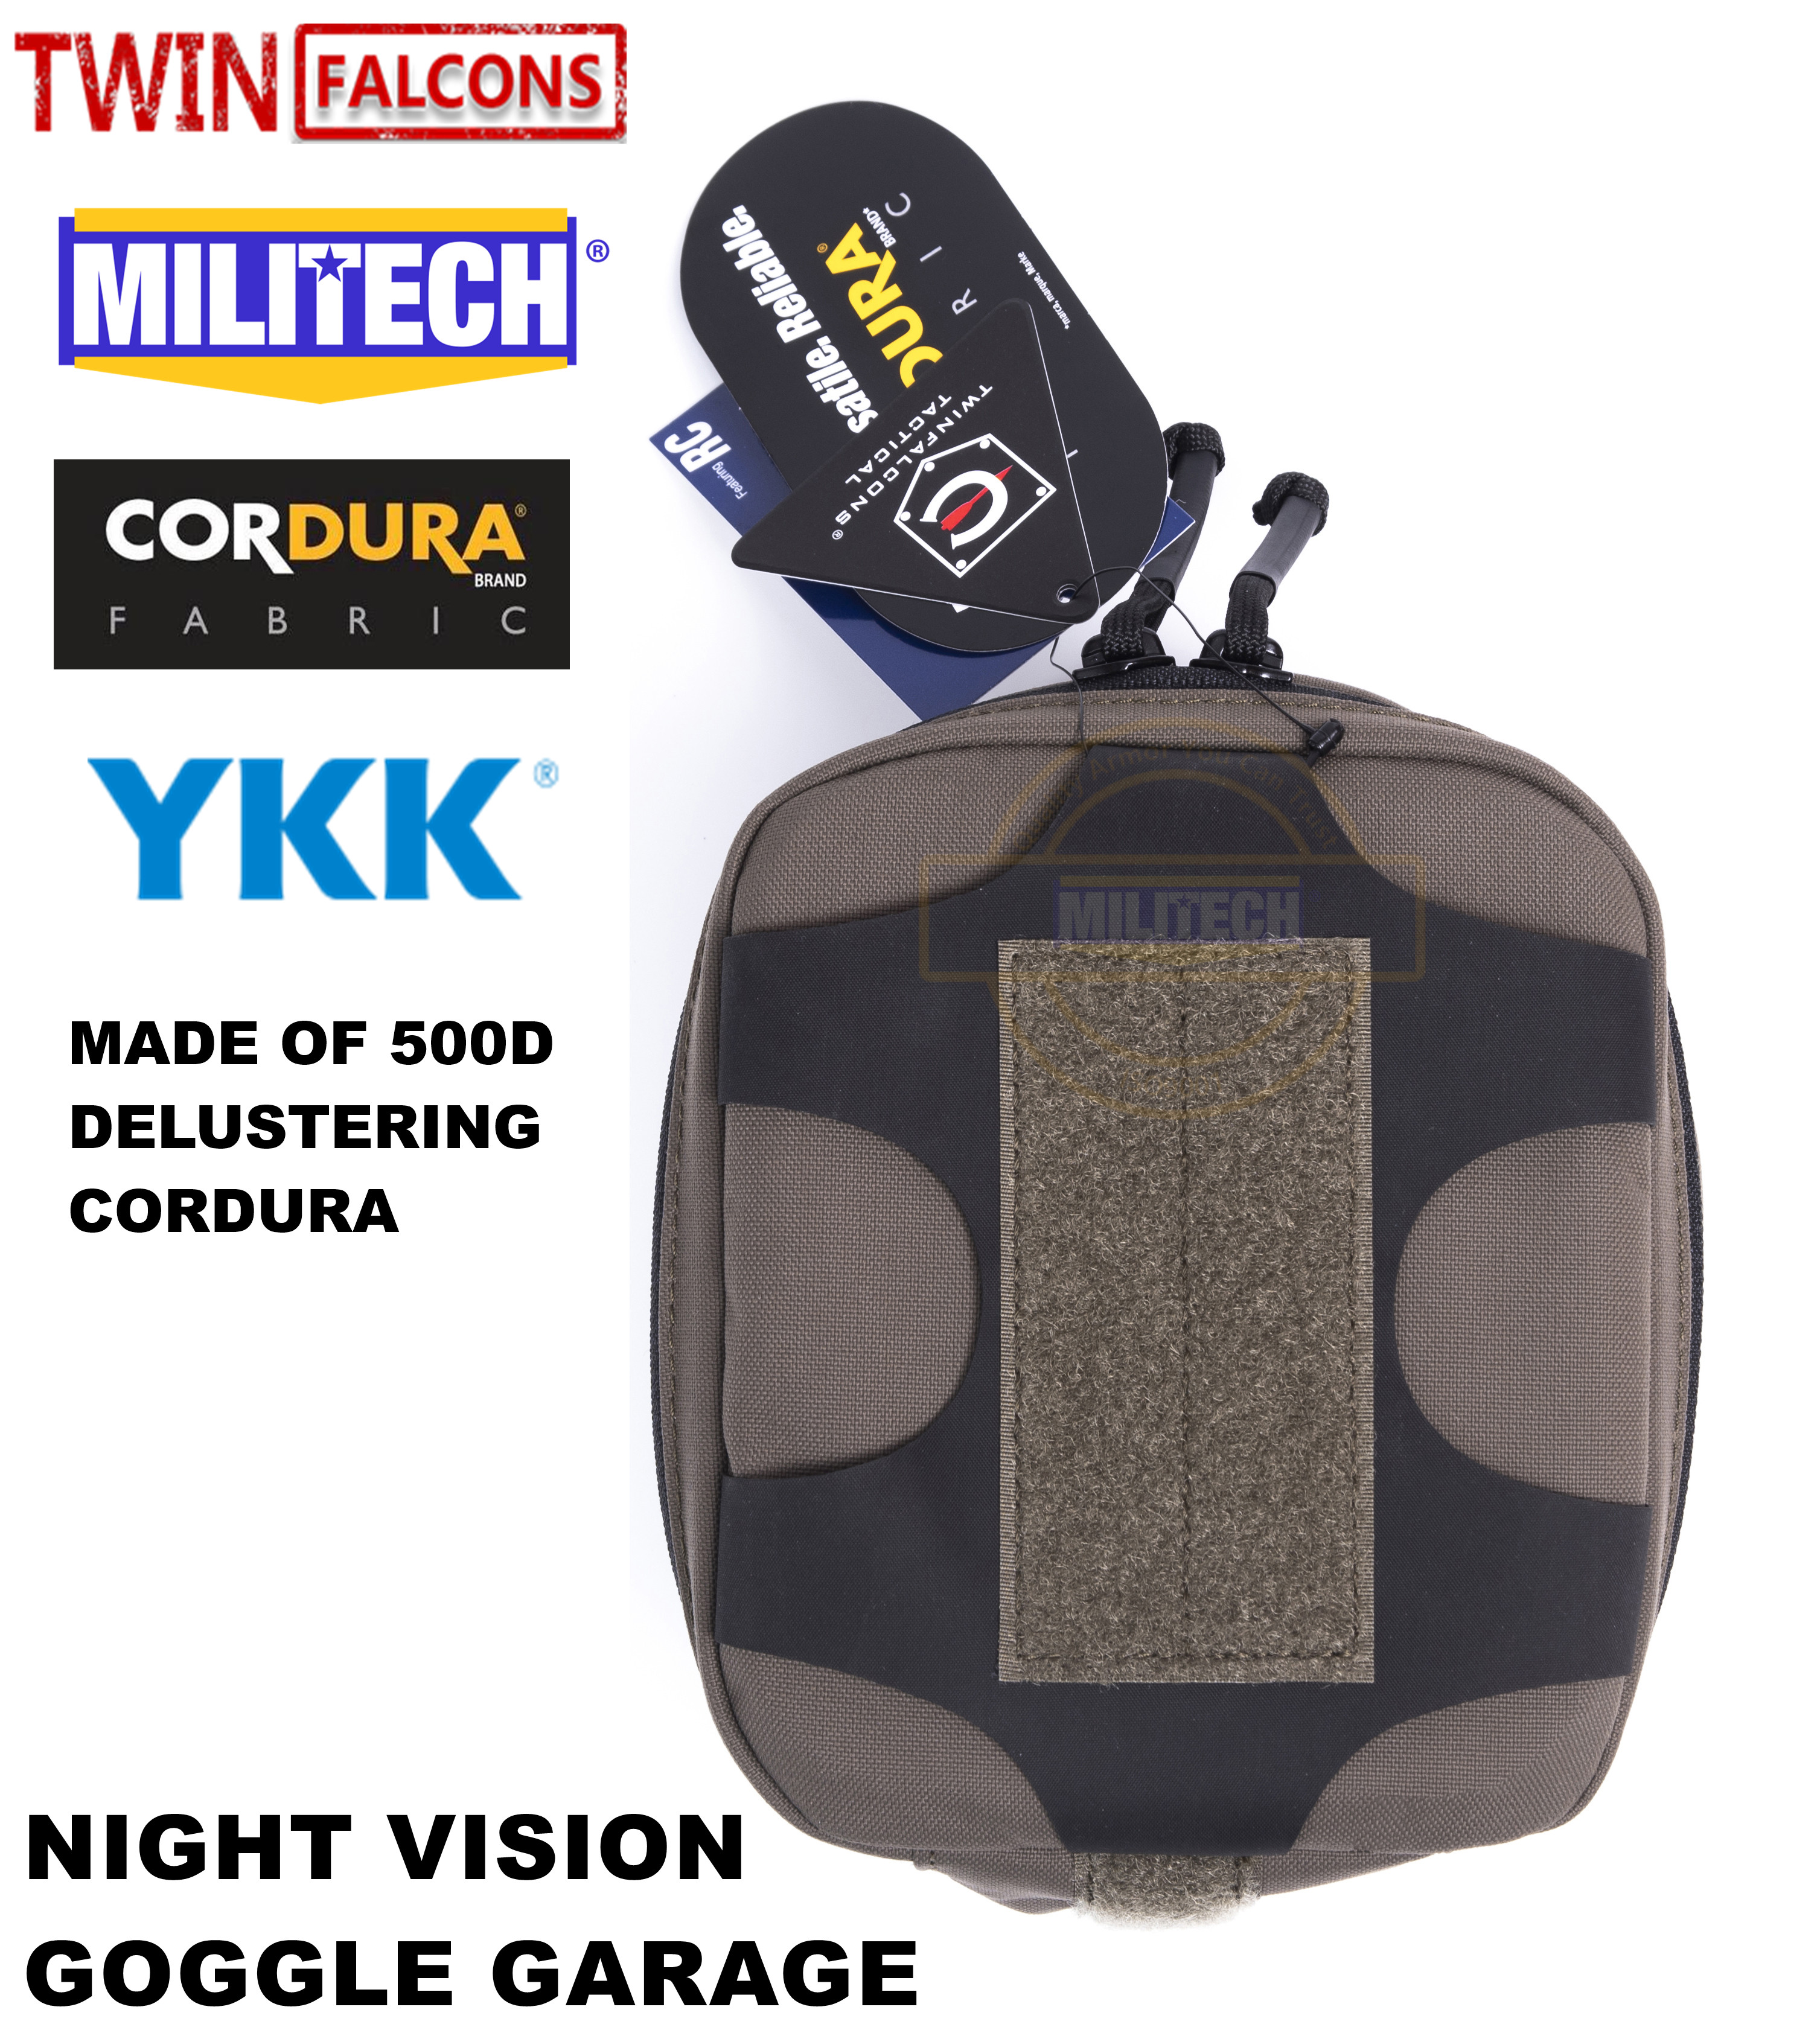 MILITECH TWINFALCONS TW Delustered Cordura NVD NOD NVG Garage For Helmet Night Vision Device Goggle Pouch Storage